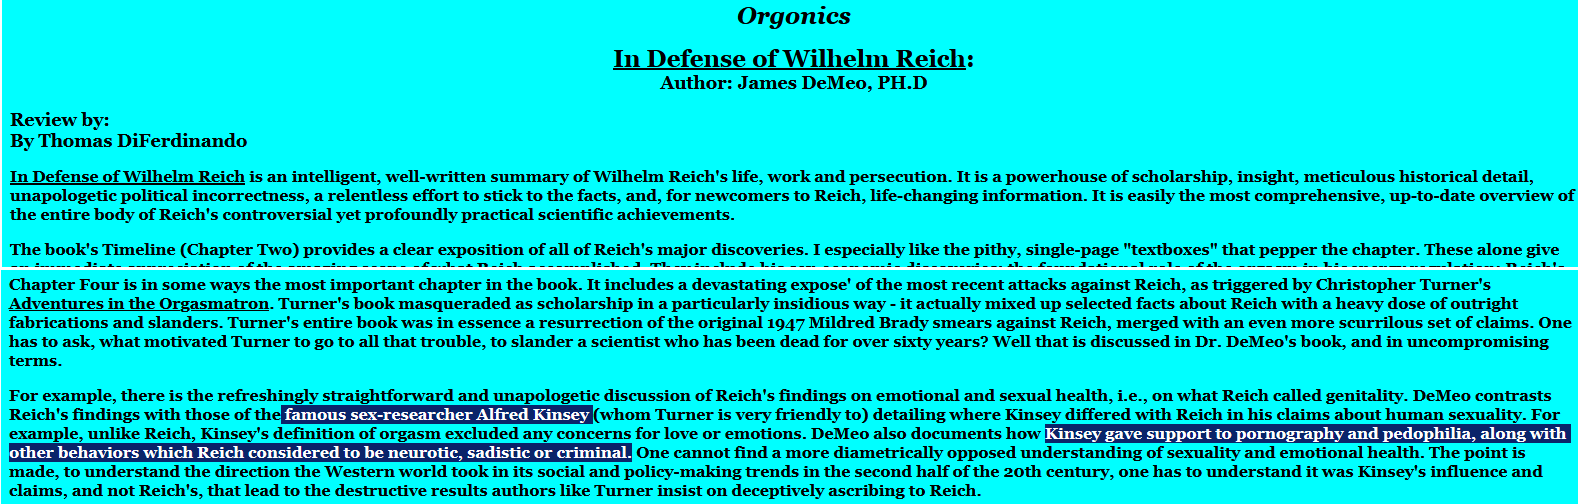 In Defense of Wilhelm Reich review.png